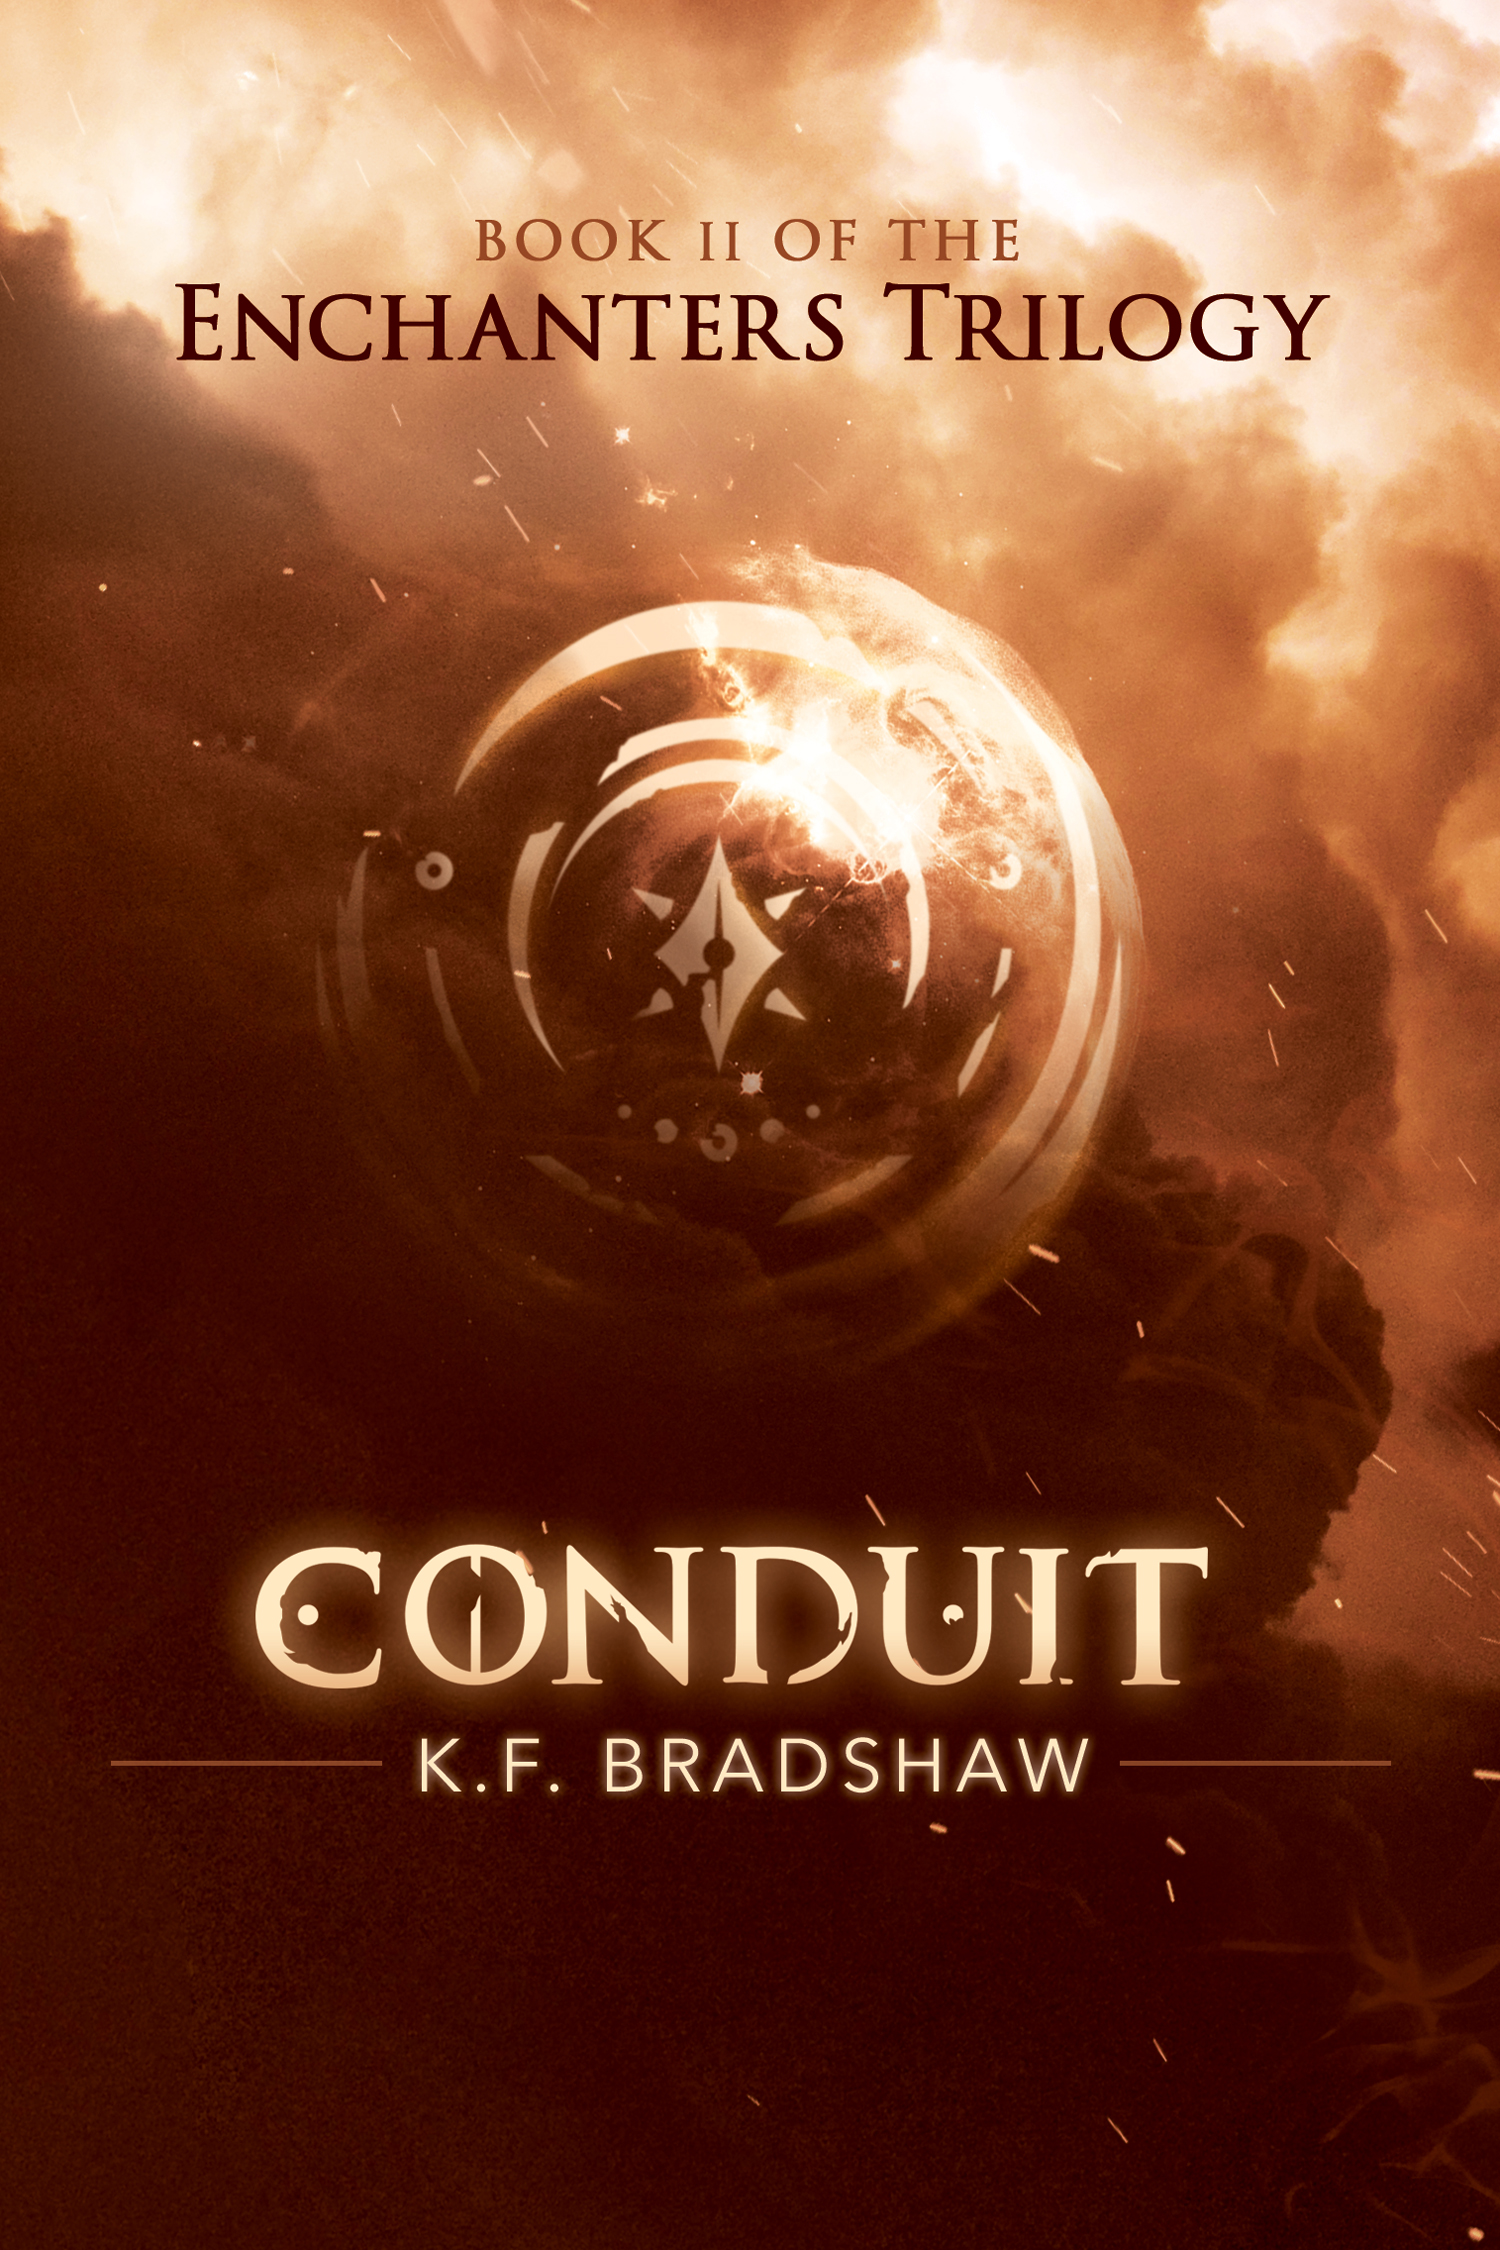 //kfbradshaw.com/wp-content/uploads/2020/12/Conduit_EBook.jpg